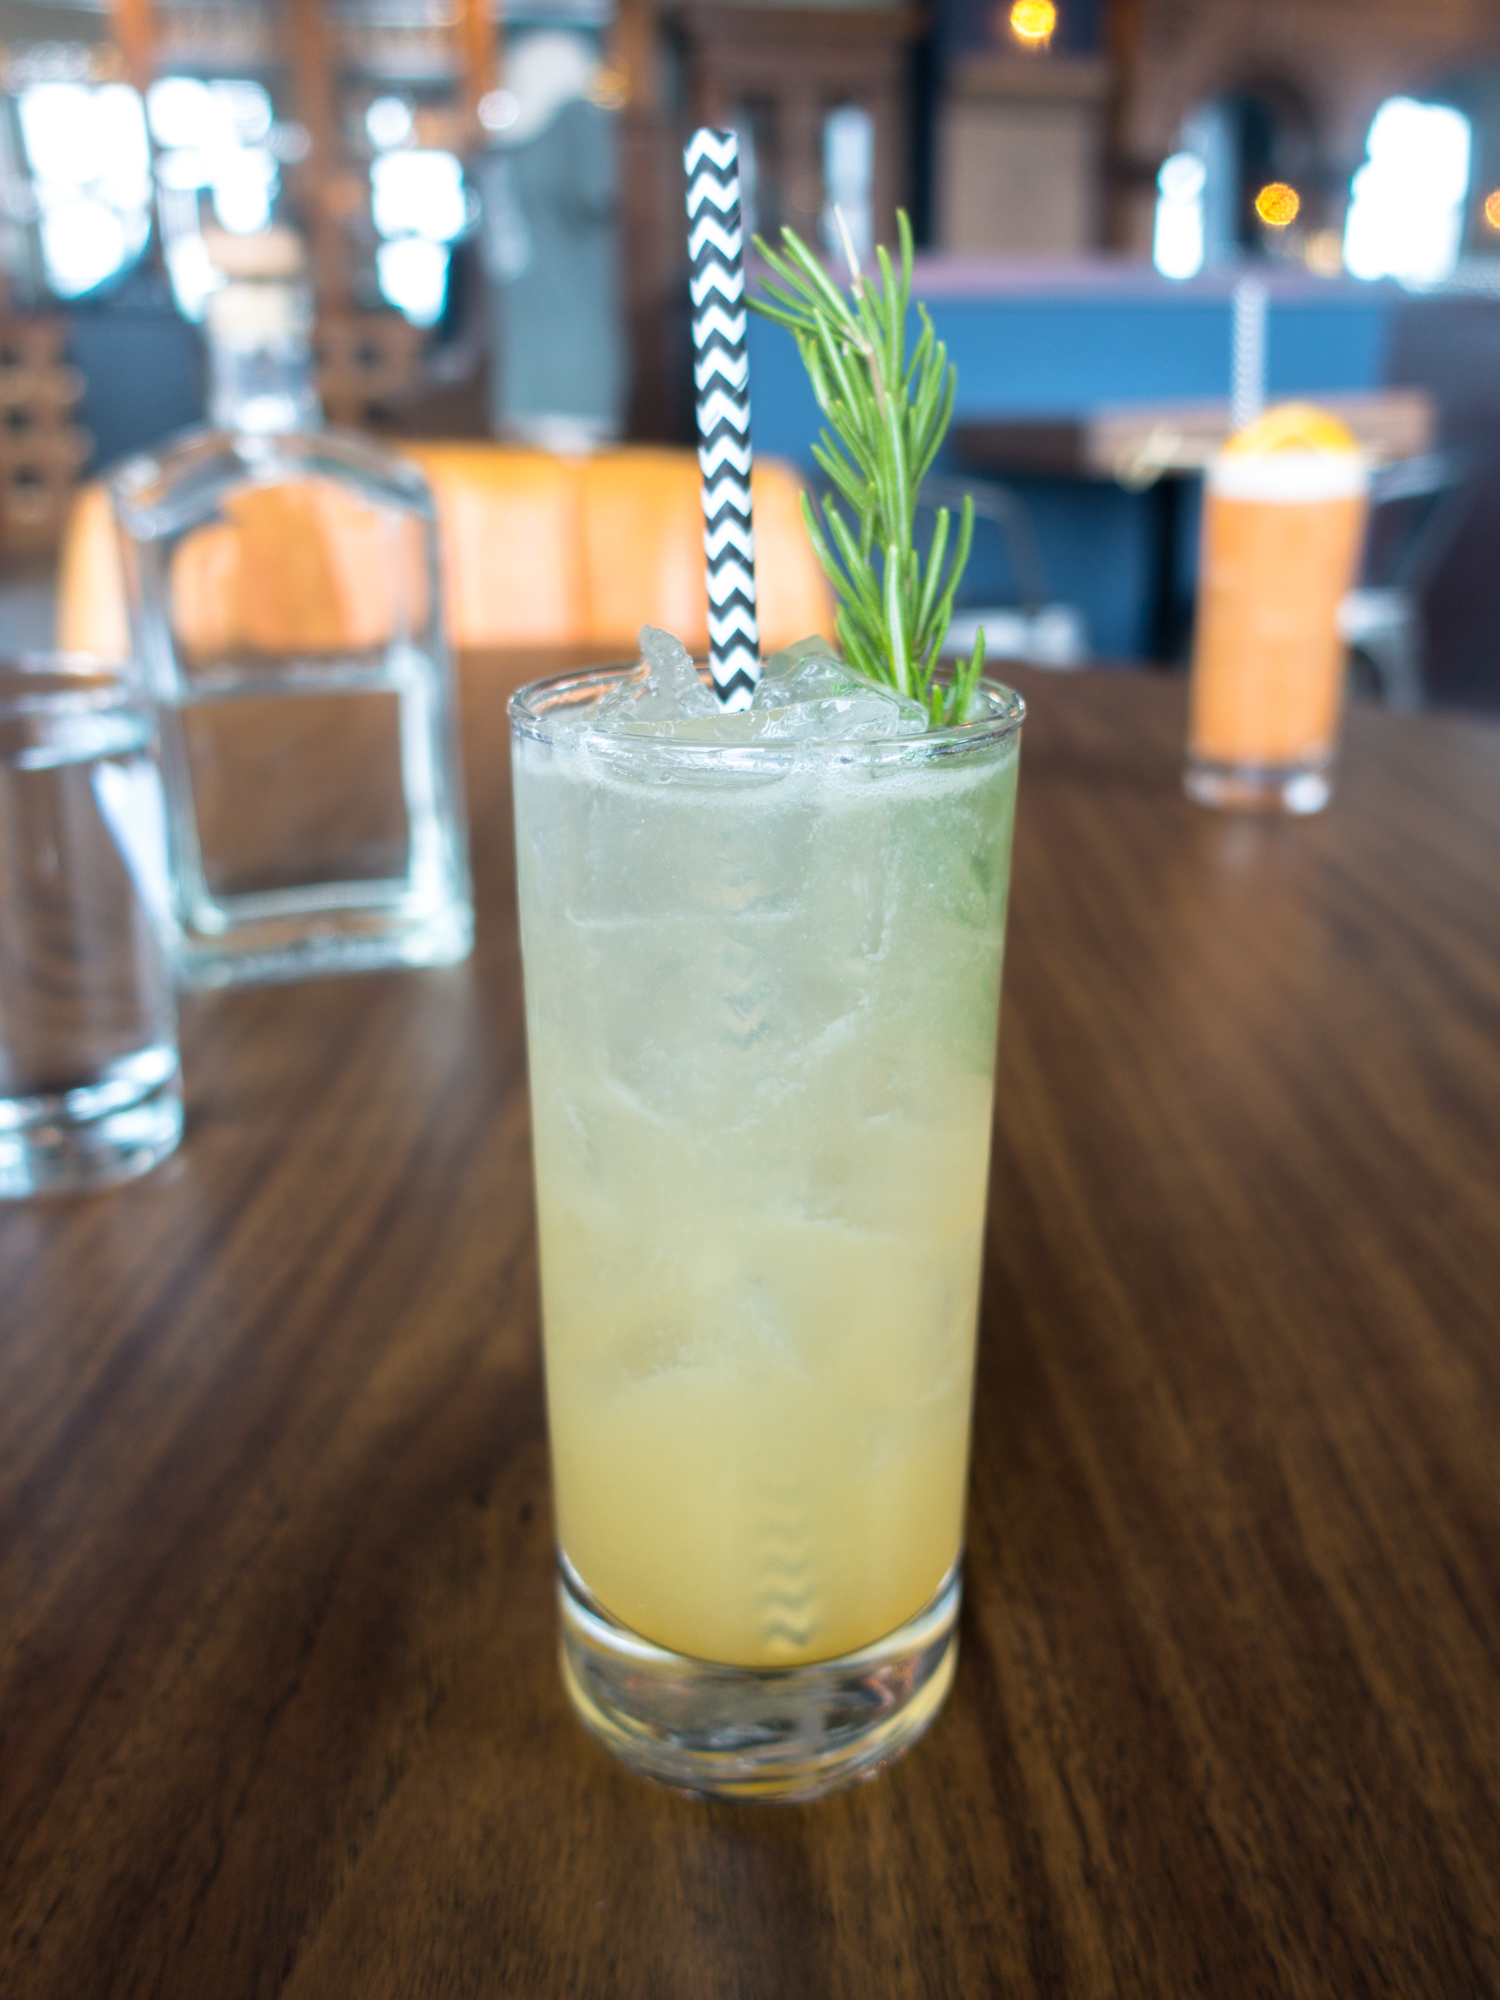 Railway Gunner—a unique gin cocktail with rosemary syrup, lime juice, and apricot jam.